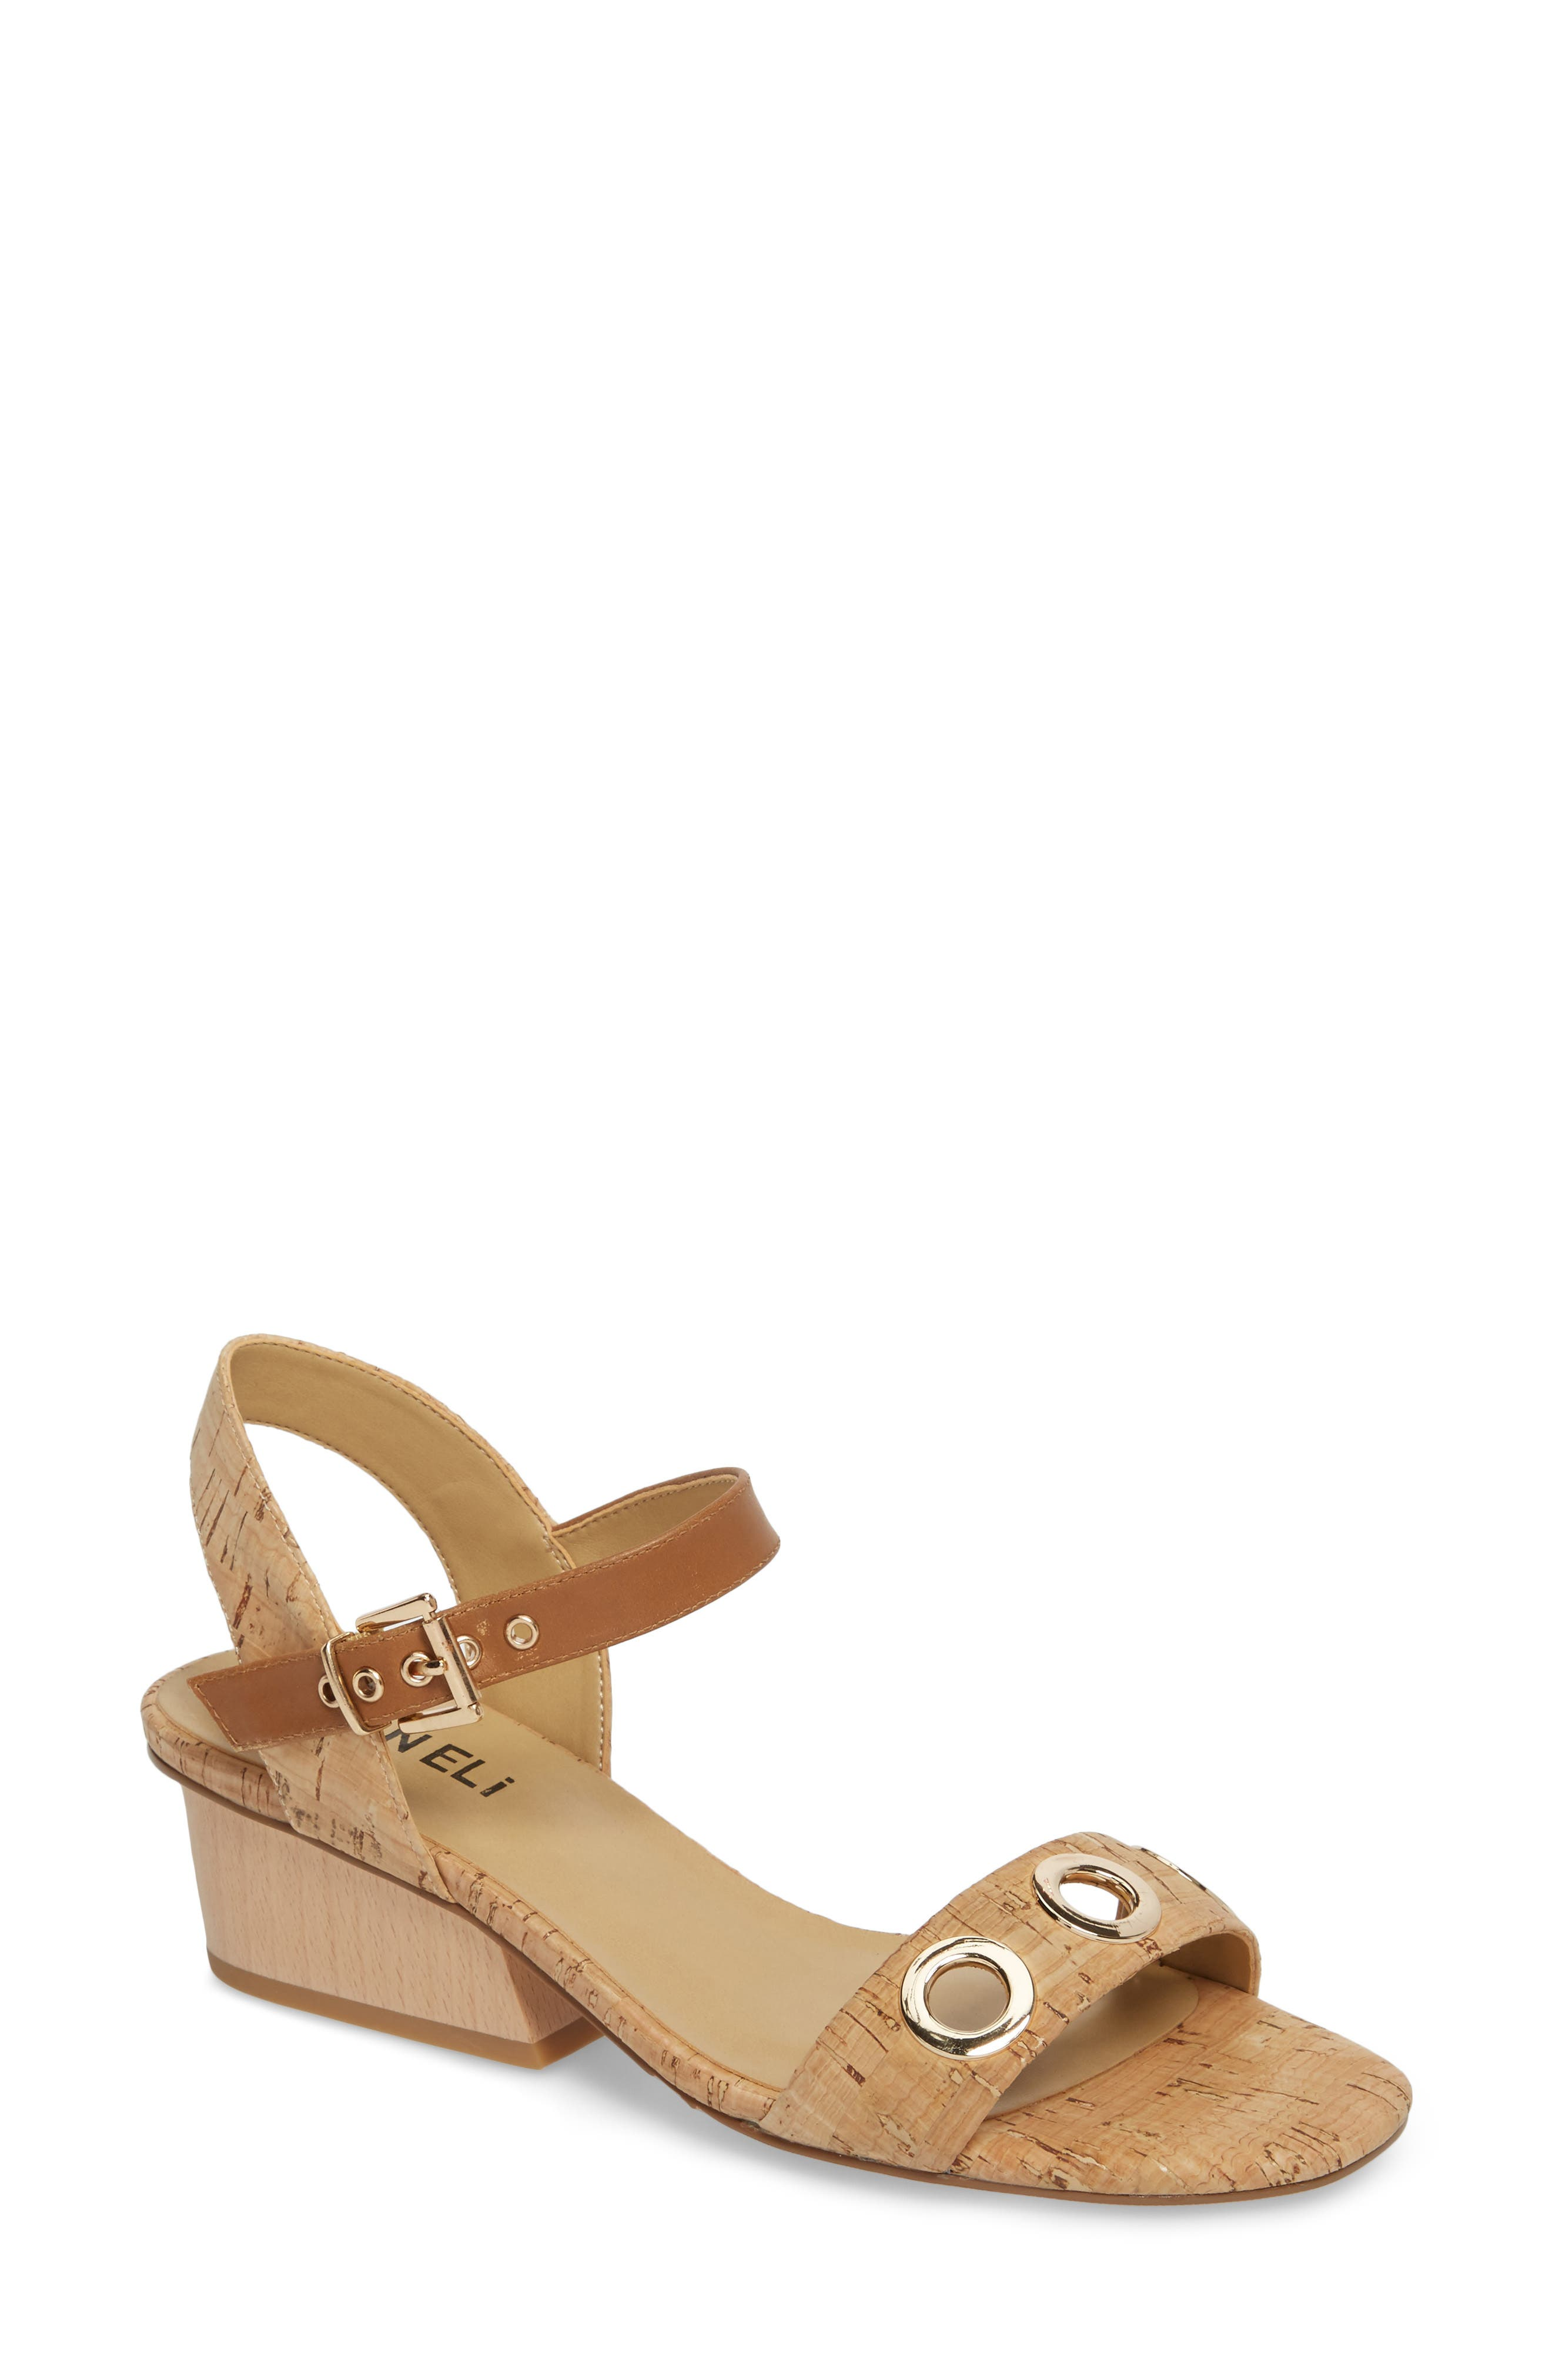 Alternate Image 1 Selected - VANELi Chaddy Sandal (Women)